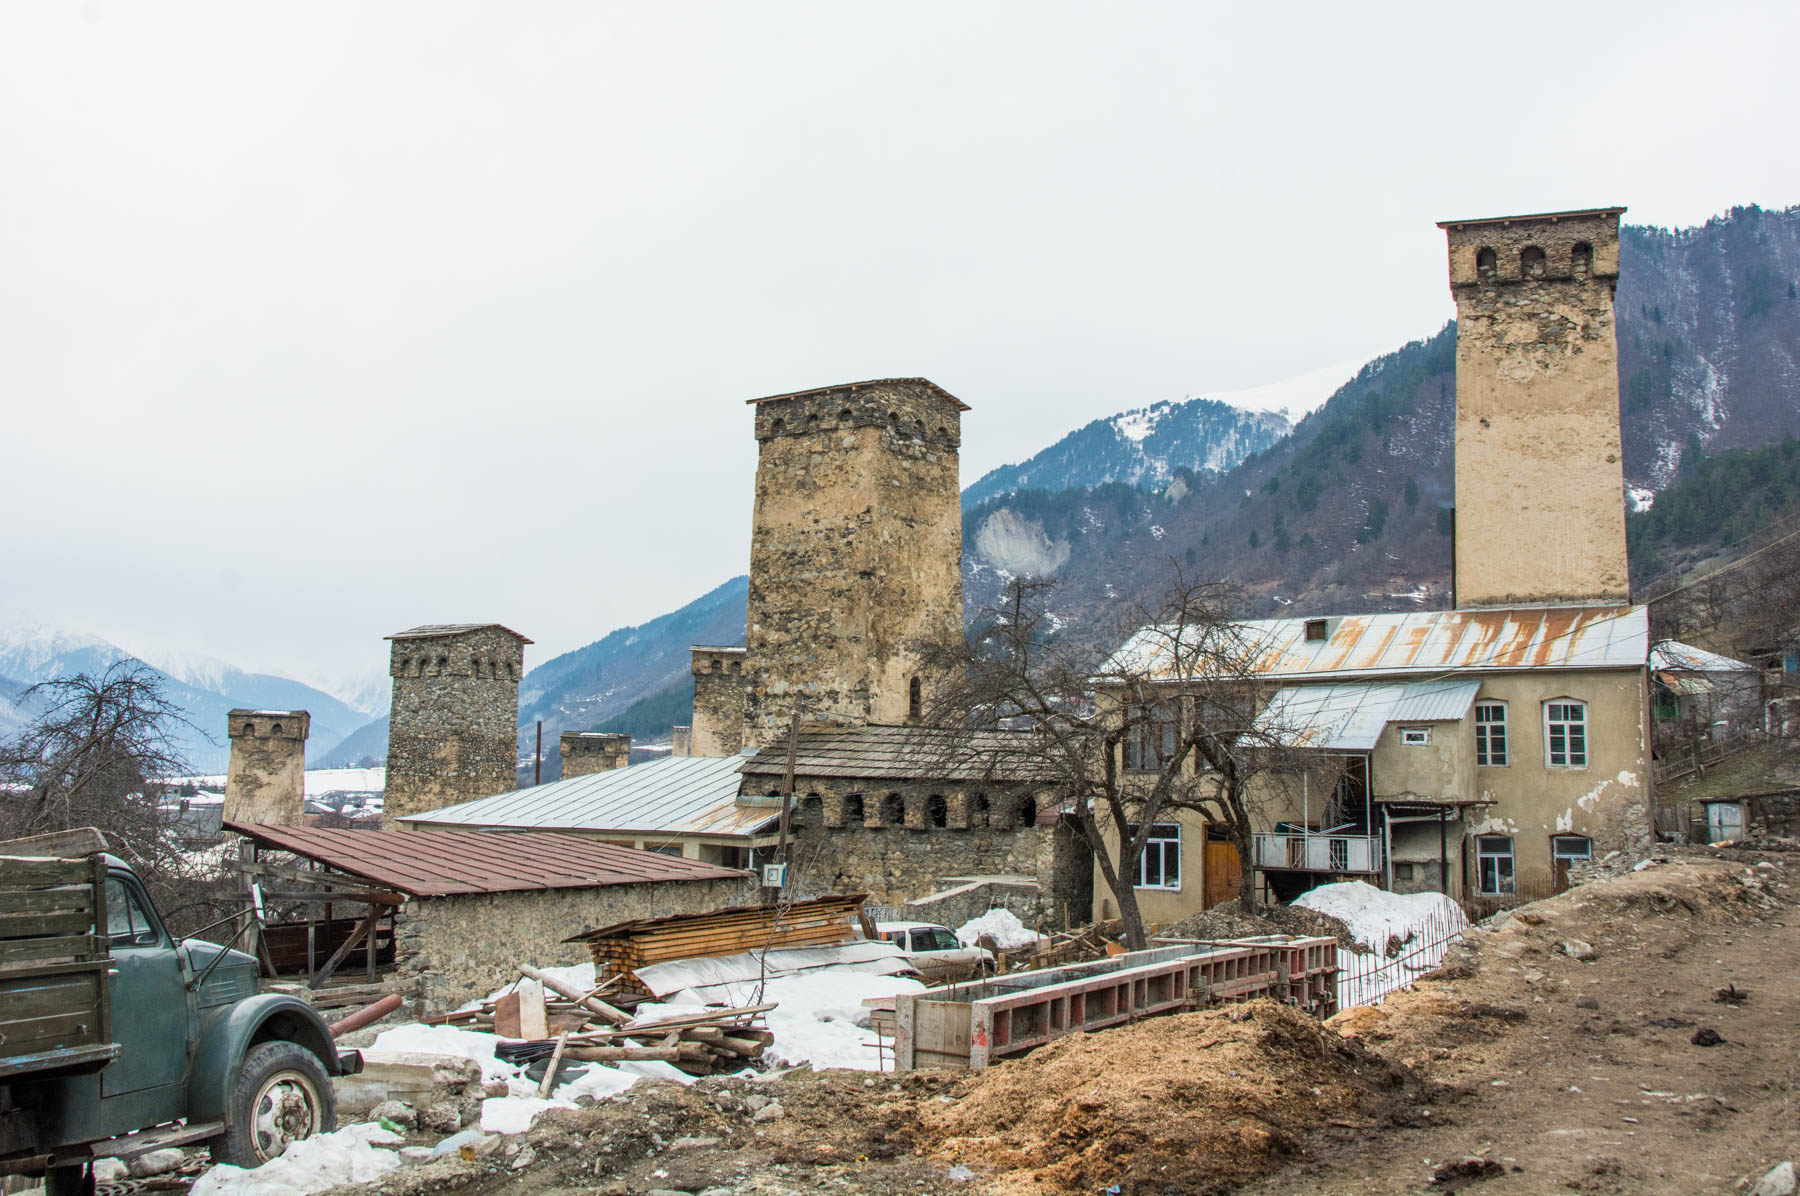 Svan towers in Svaneti, Georgia